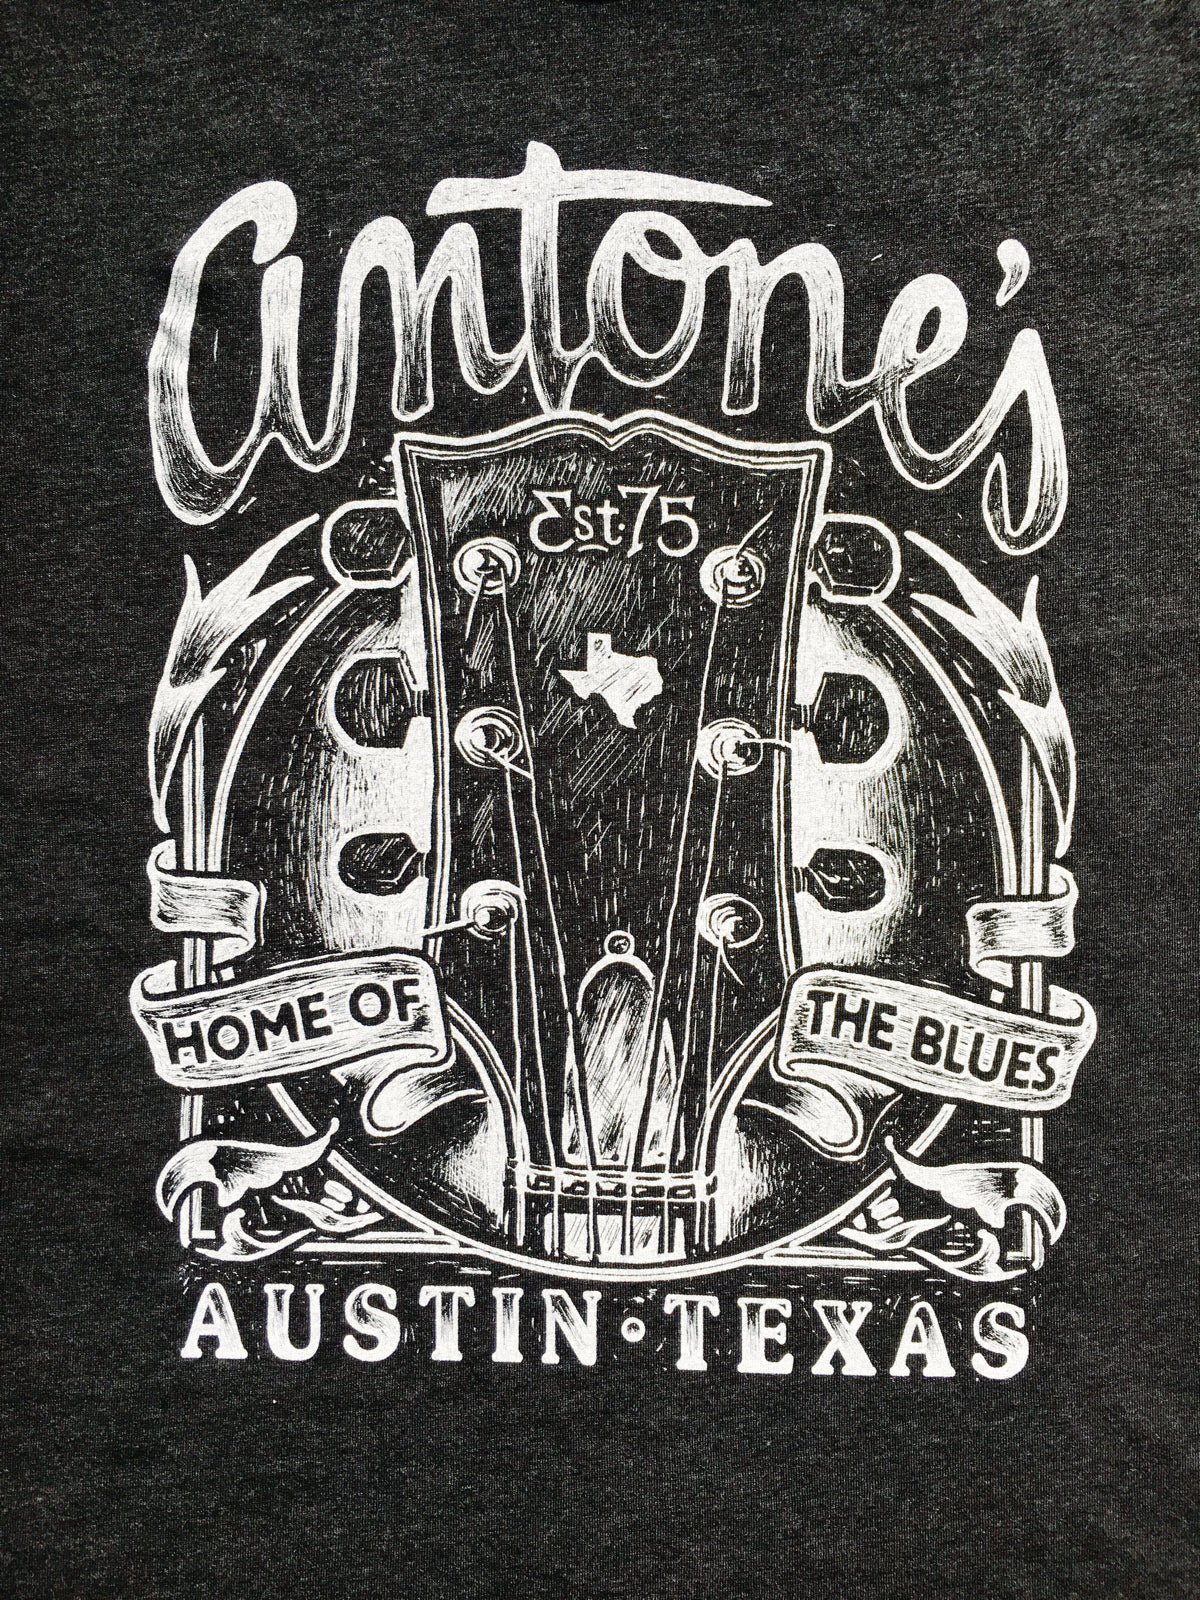 Antone's Headstock Shirt